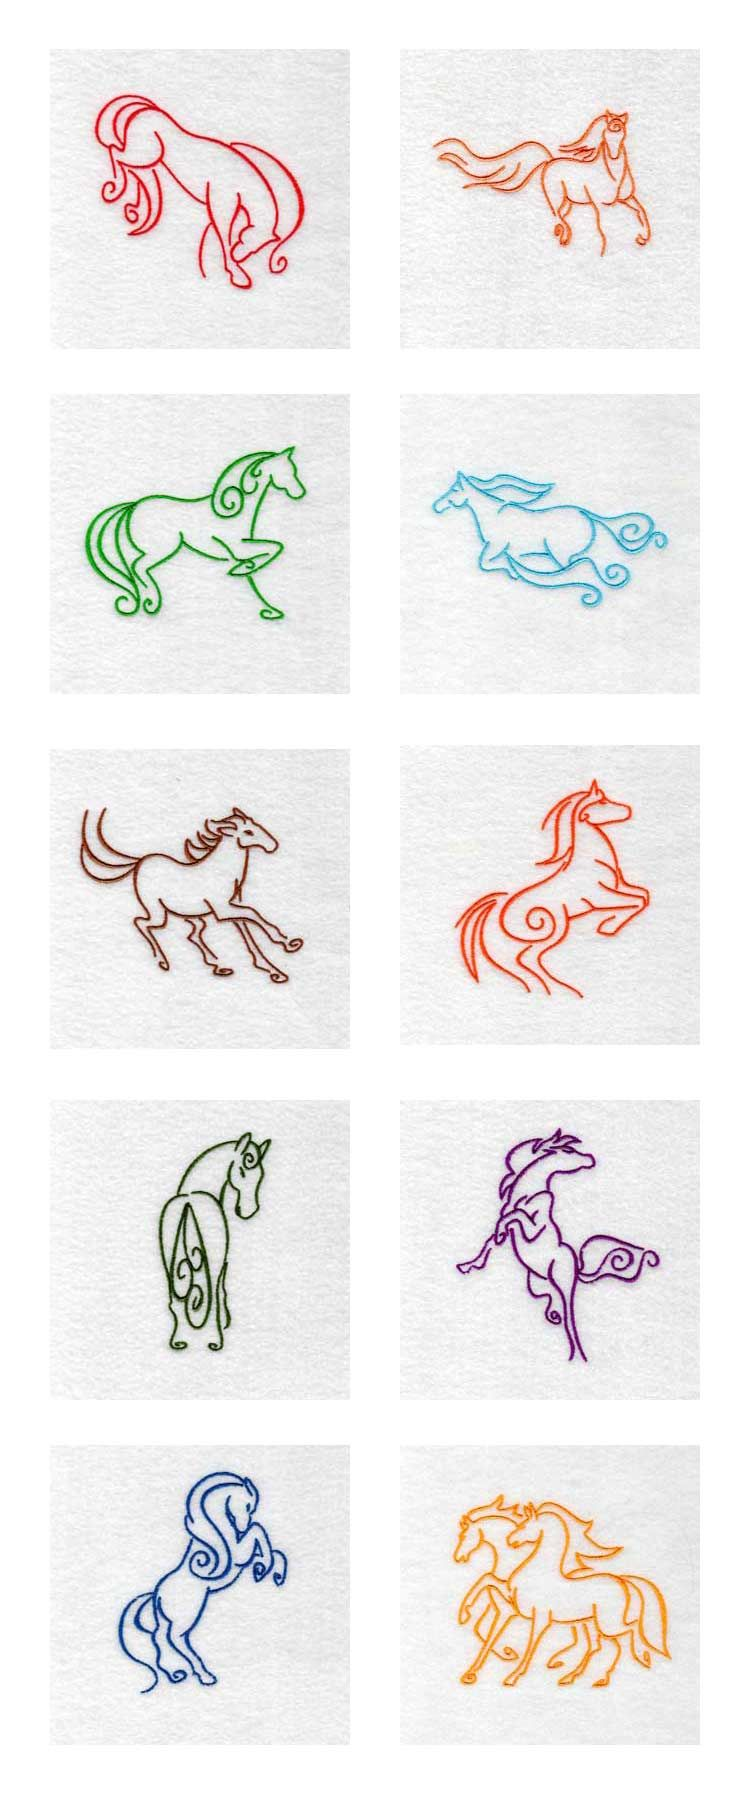 Art Deco Horses Embroidery Machine Design Details. paid $1 for all 10 designs